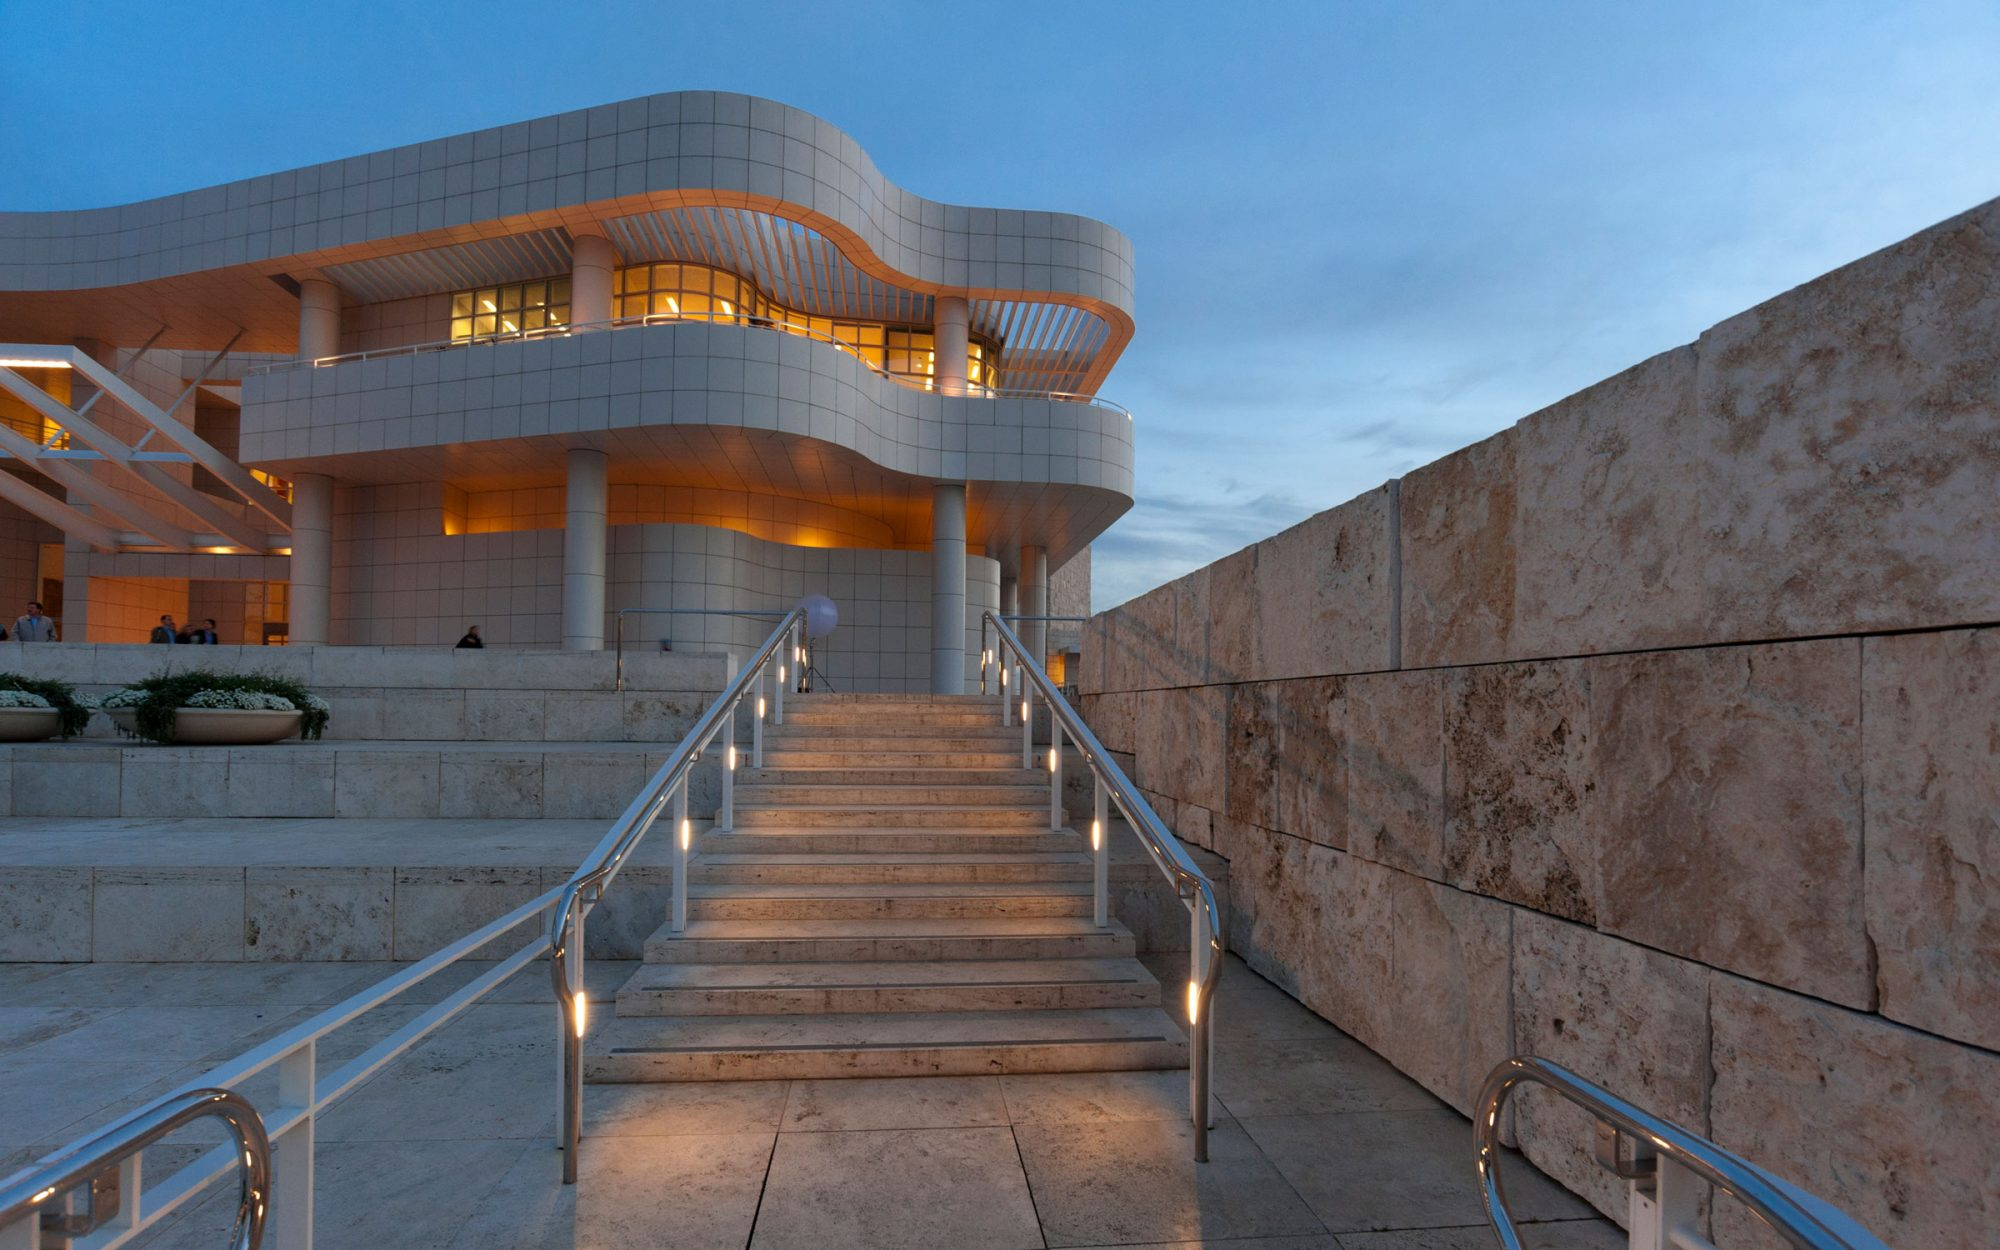 7. The Getty Center in Los Angeles, California